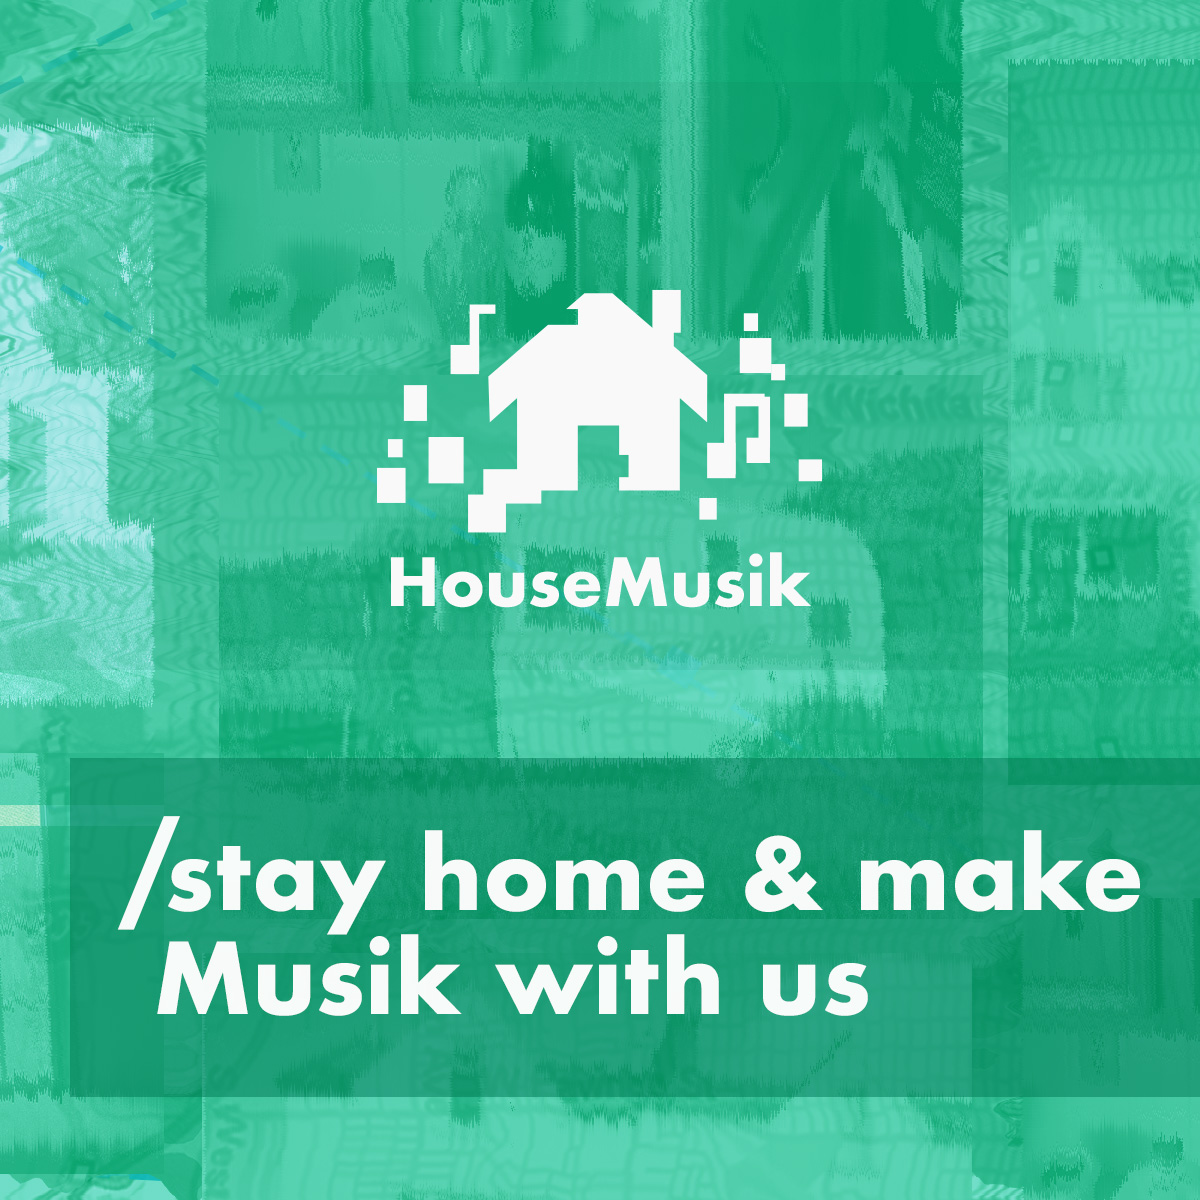 Housemusik_Fb_insta